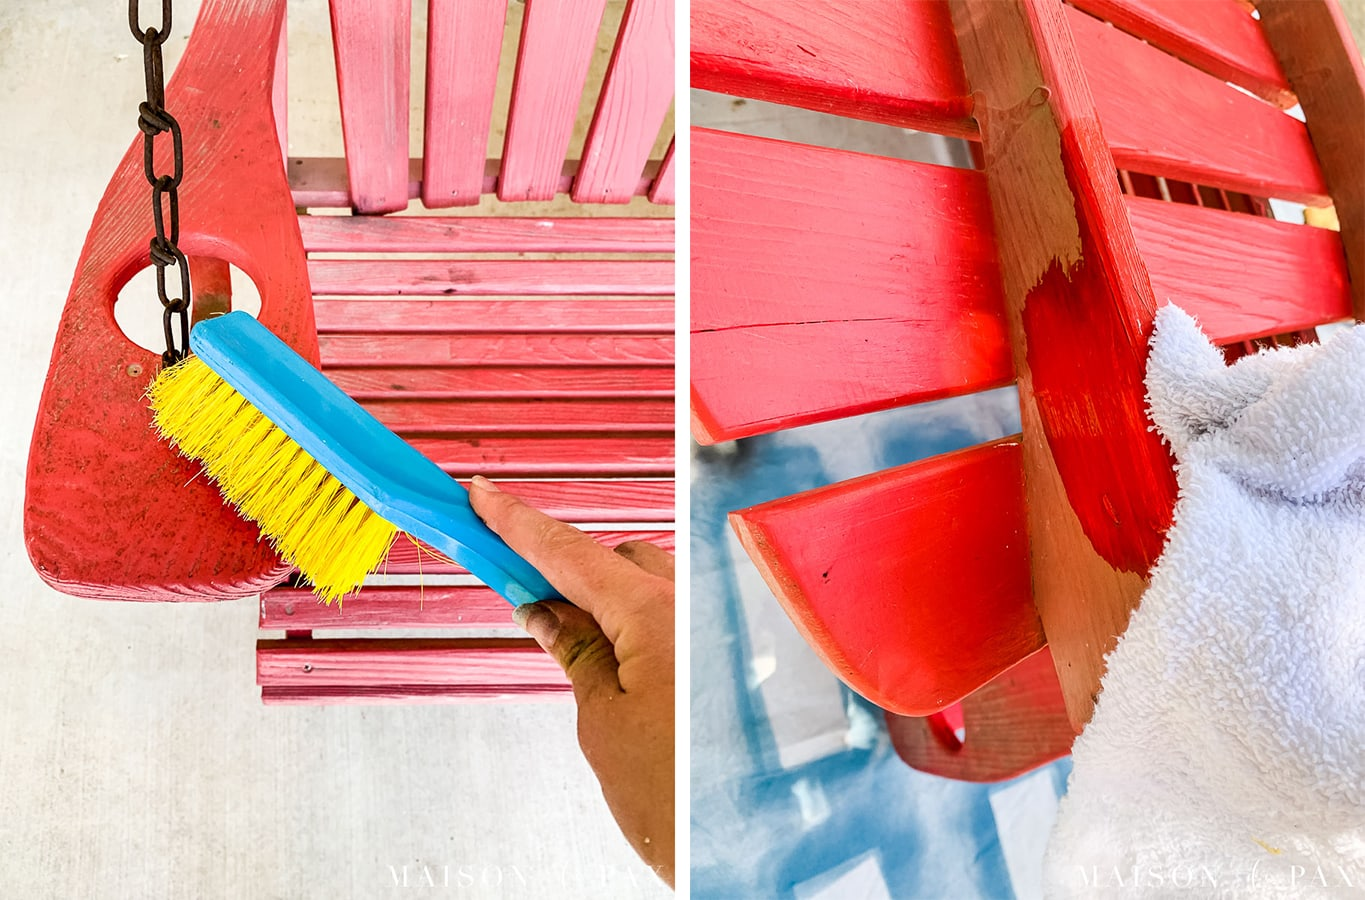 cleaning furniture before spray painting | Maison de Pax